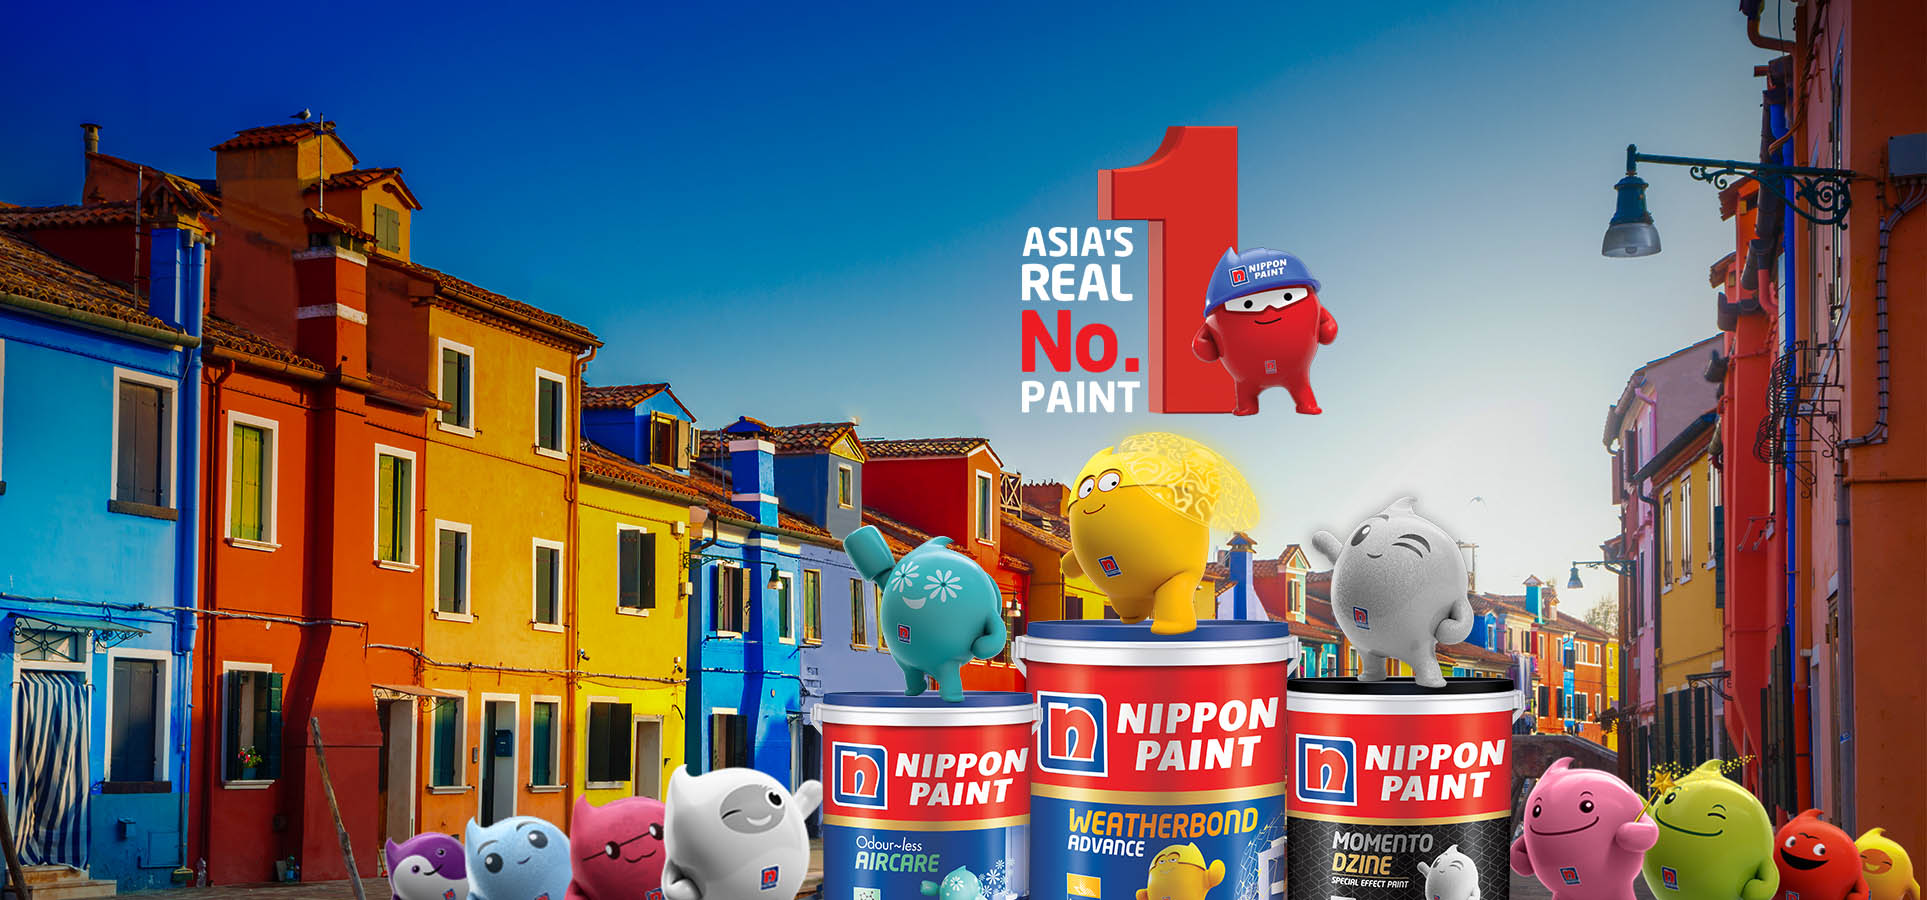 Nippon Paint India – Asia's Real No 1 Paint